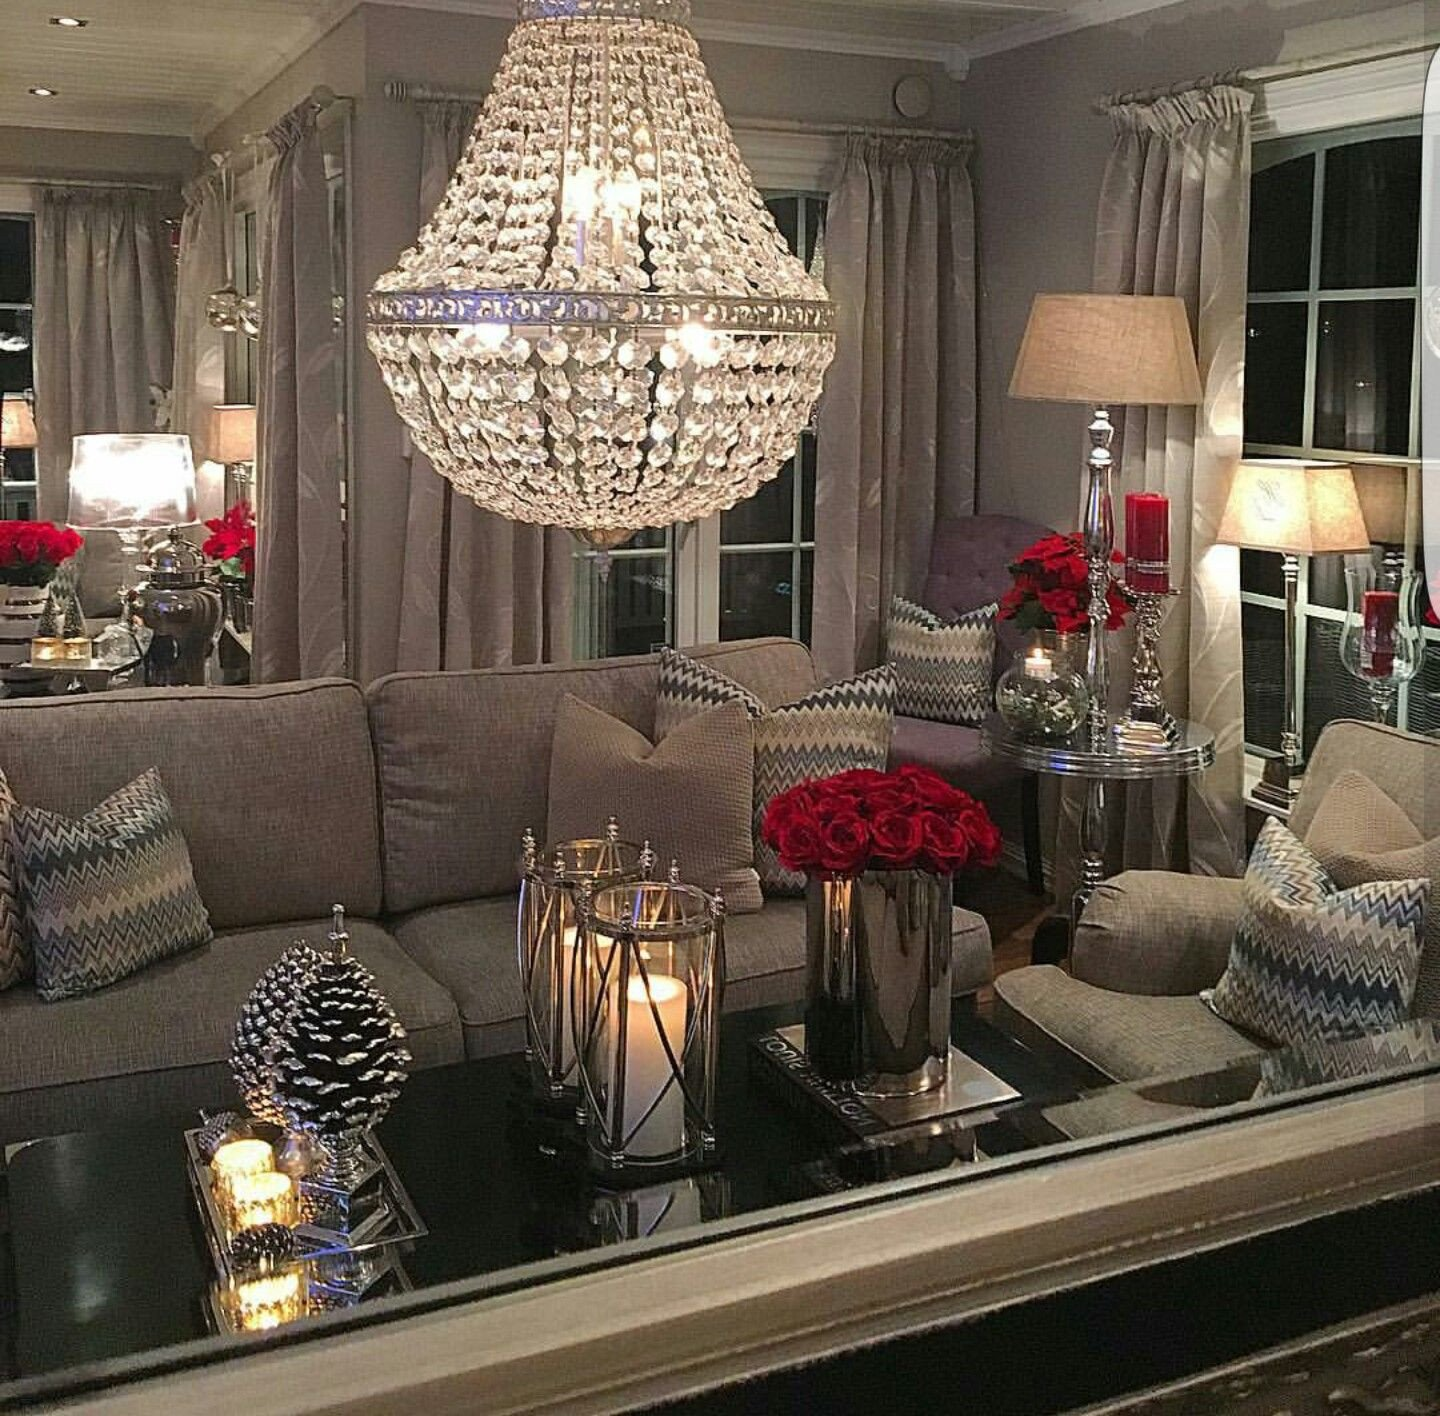 Black and Silver Home Decor Lovely What Lovely Room I Love the Red Accents with the Neutral Pallet